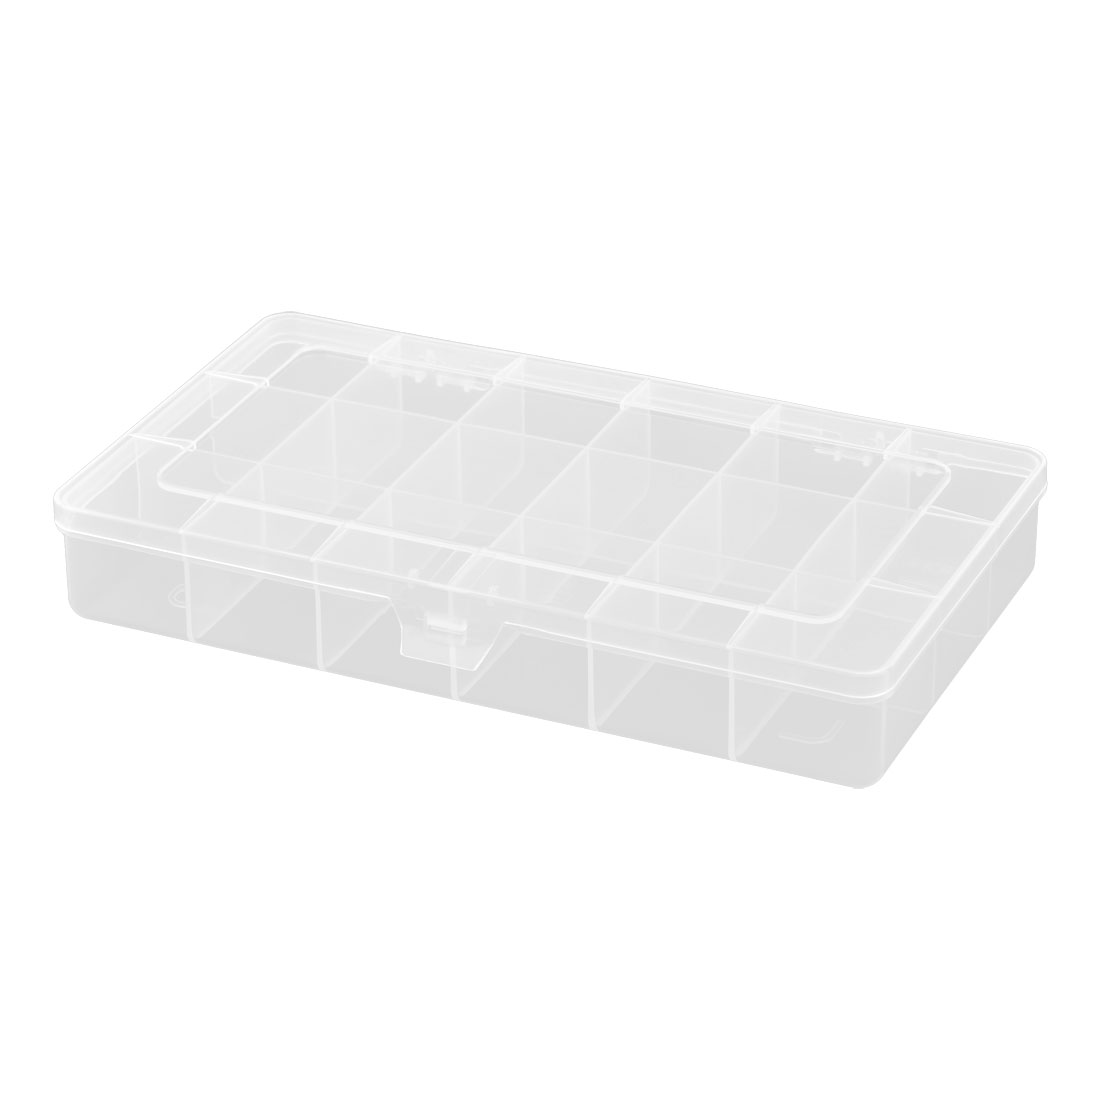 Household Plastic Sweing Accessories Craft Parts 18 Compartments Storage Box